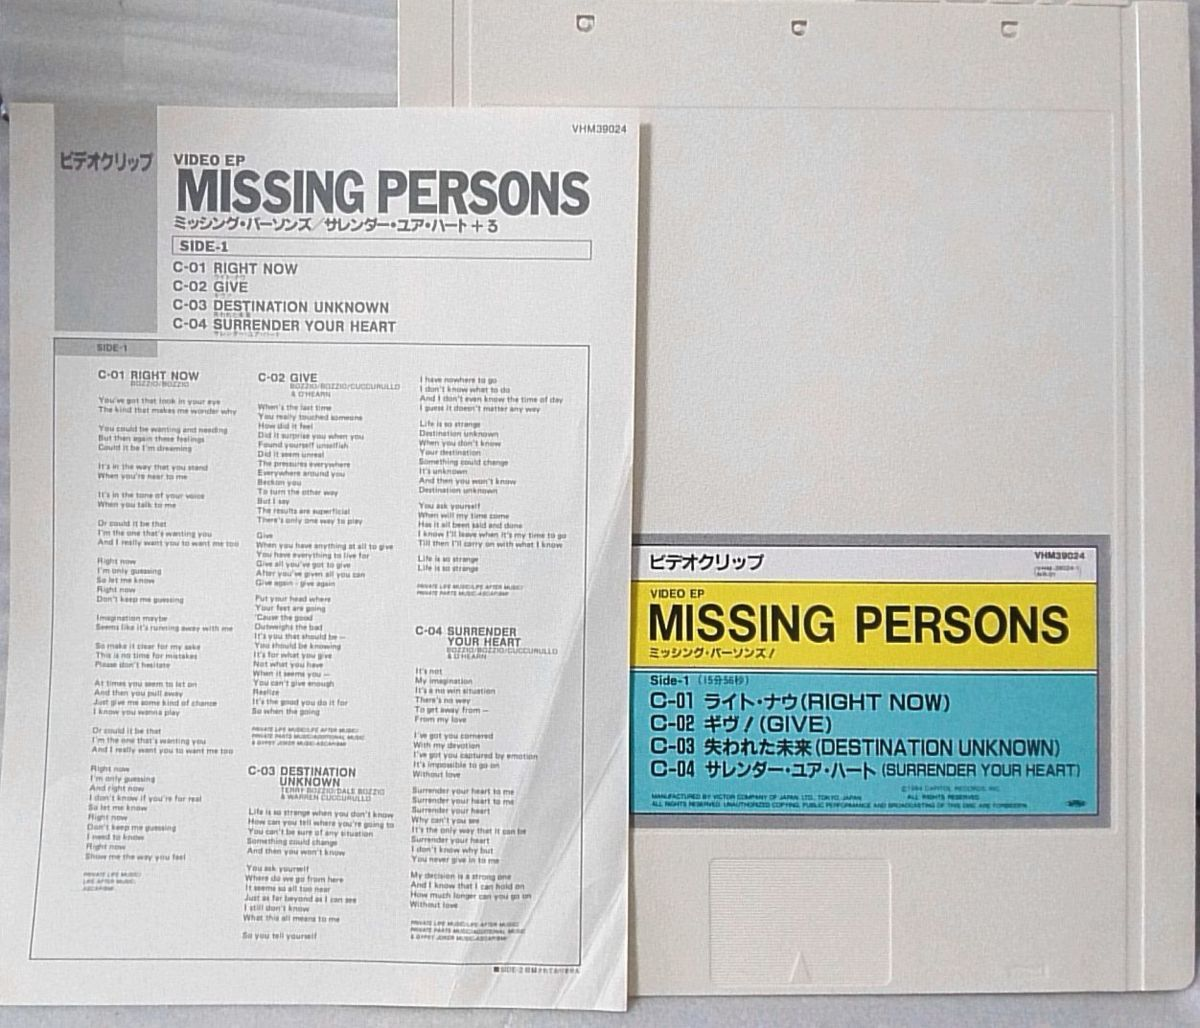 VHD MISSING PERSONS SURRENDER YOUR HEART ビデオクリップ集 全4曲 ★ [2237RP_画像4